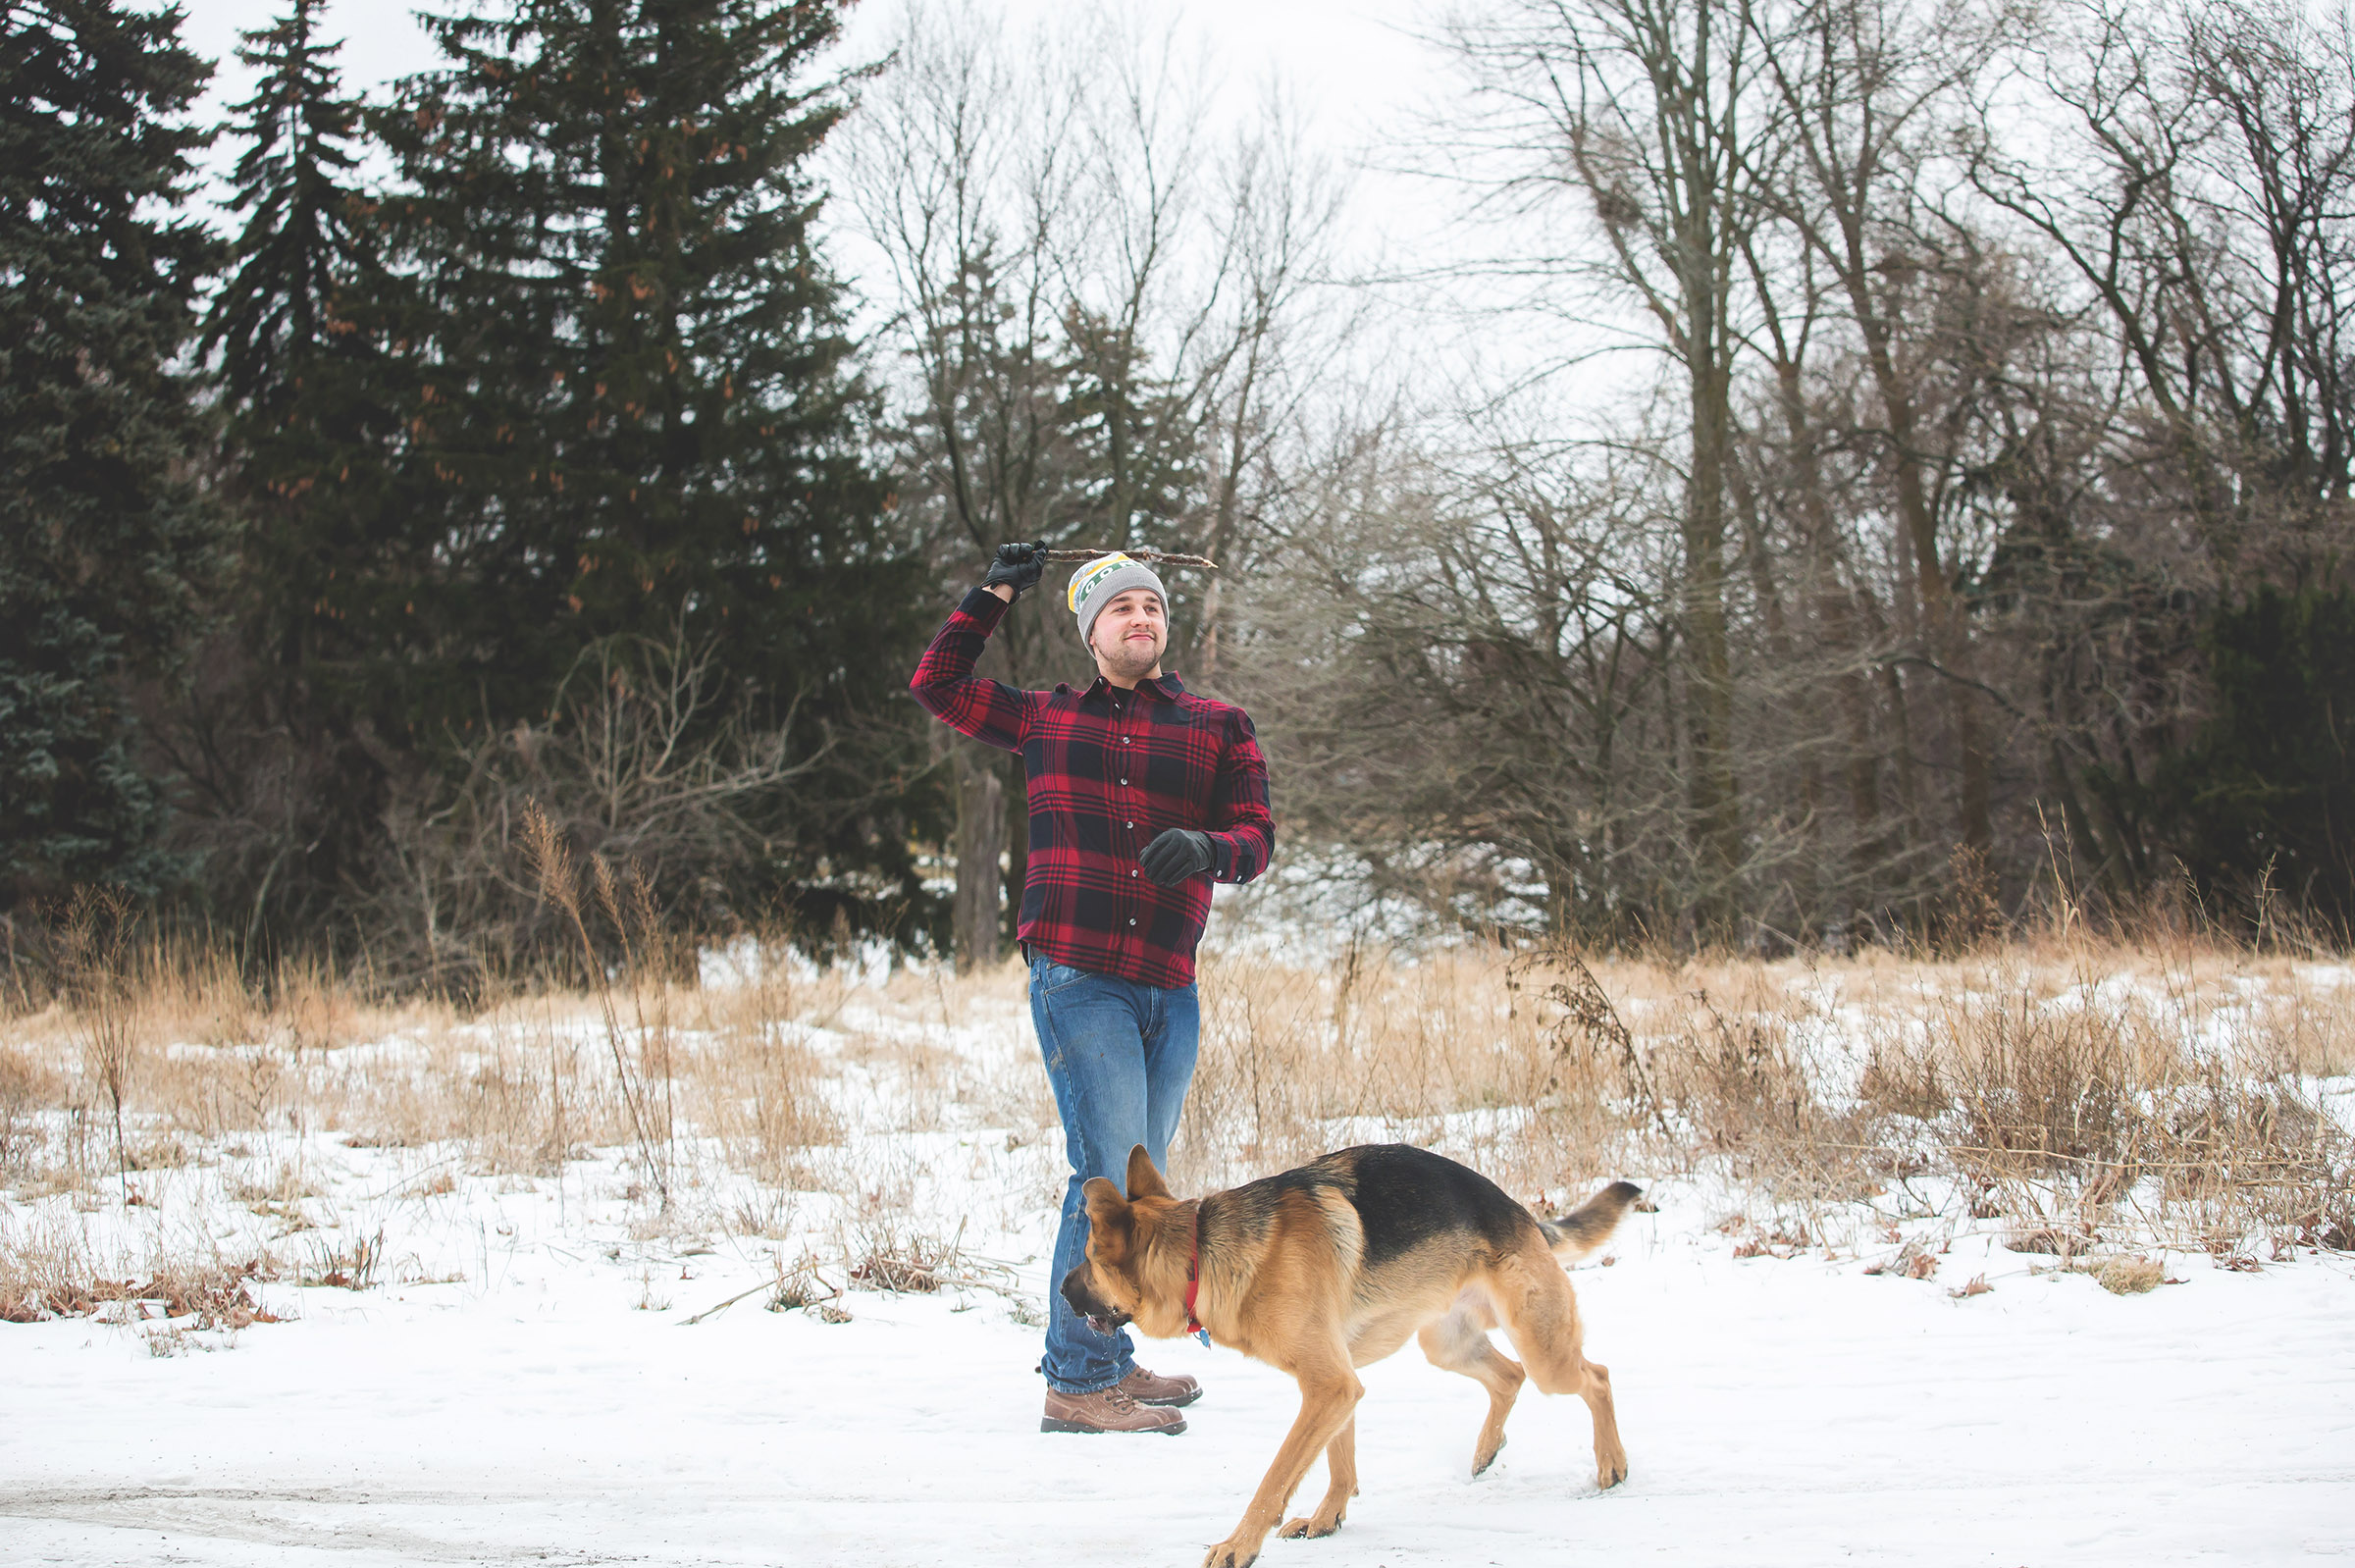 Engagement-Photos-Hamilton-Niagara-Toronto-Burlington-Oakville-Photographer-Engaged-Ring-Photography-Dog-Winter-Moments-by-Lauren-Image-10.png